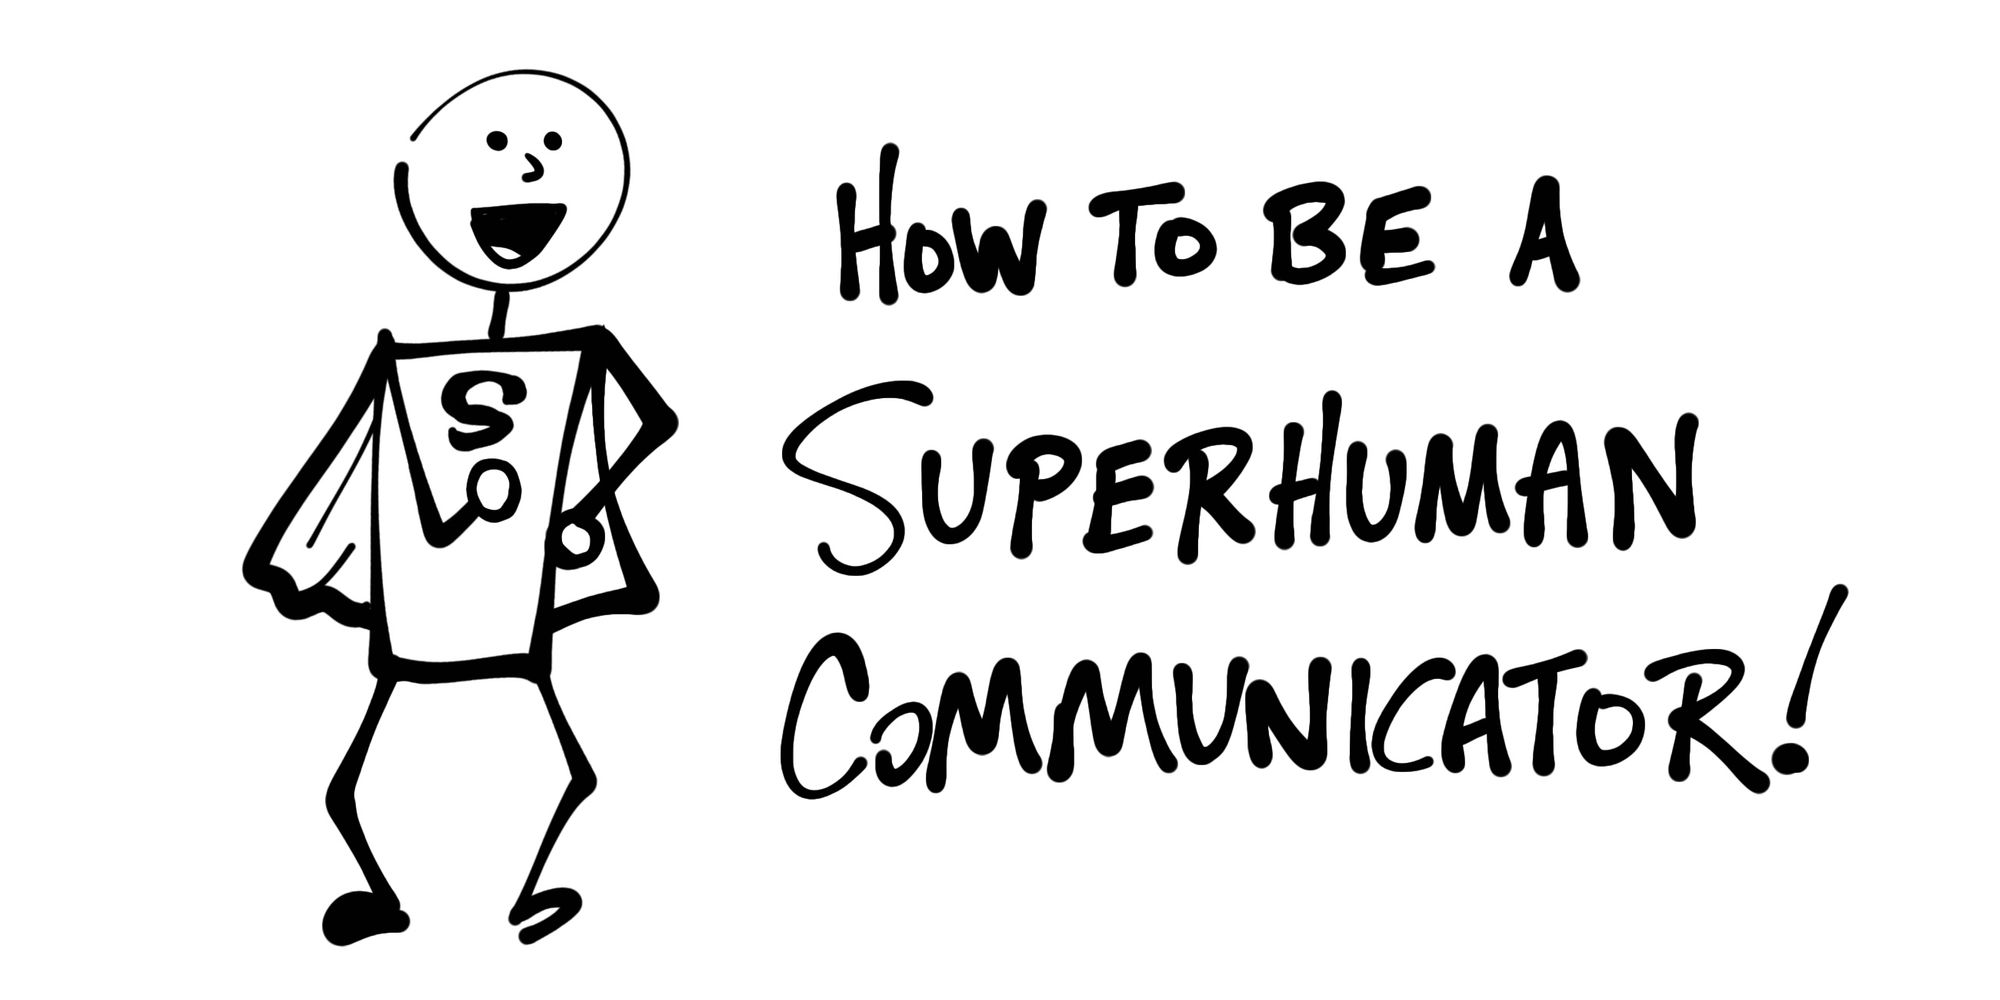 How to be a Superhuman Communicator